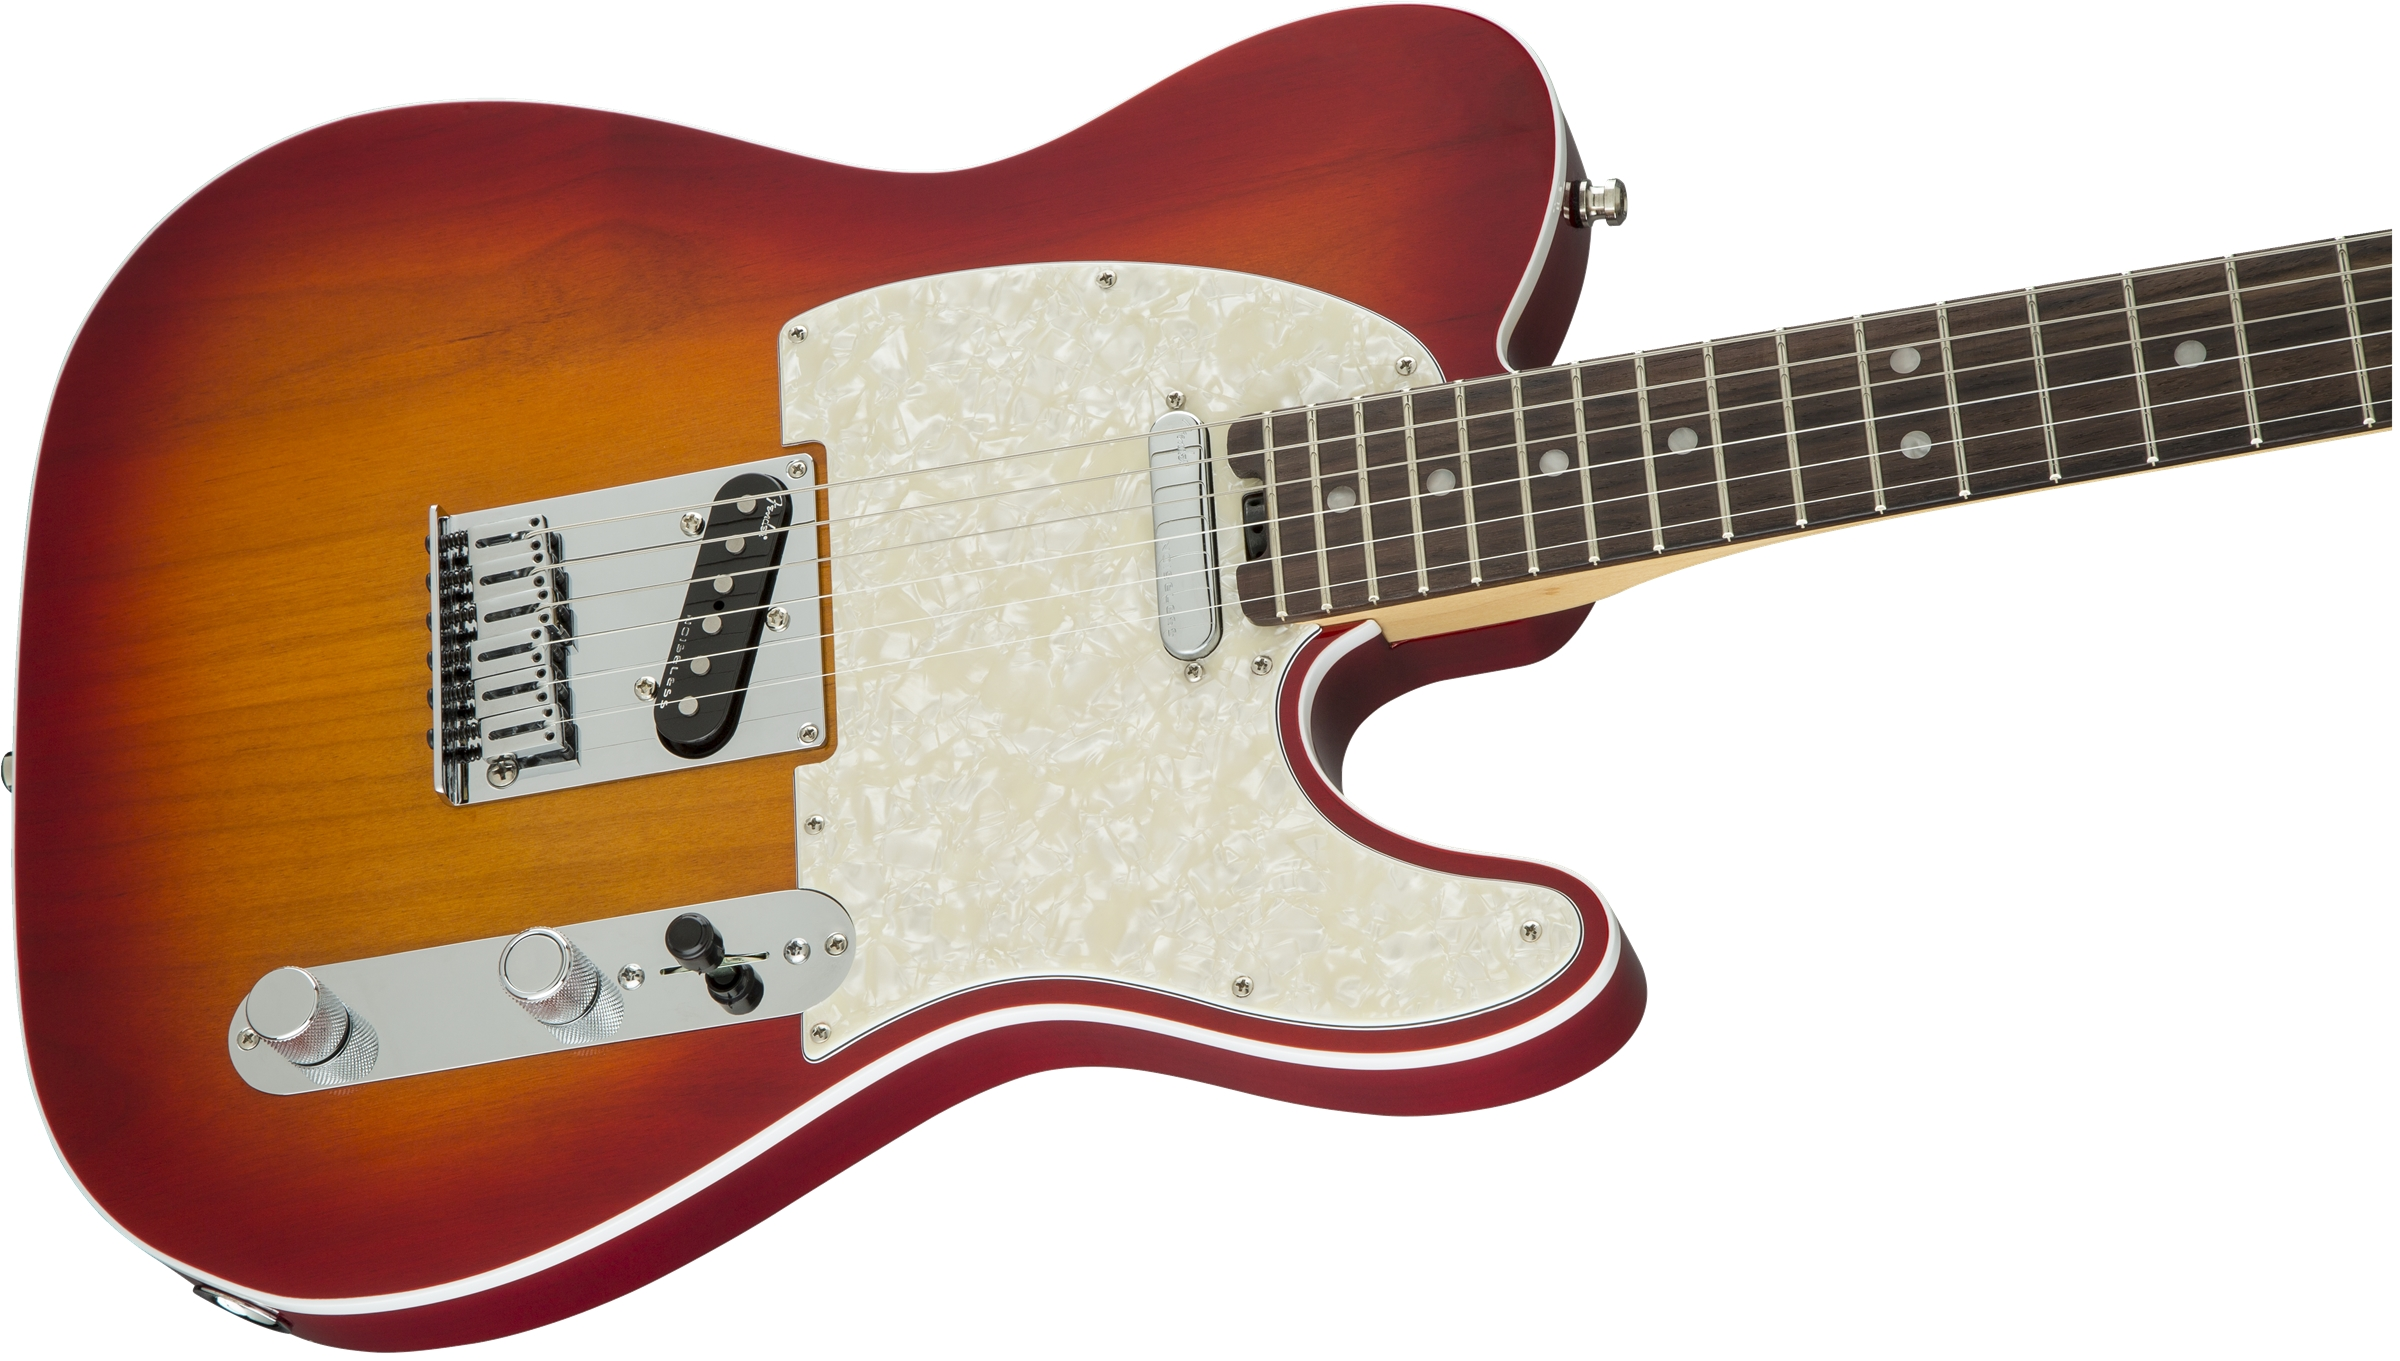 Fender American Elite Telecaster® Aged Cherry Sunburst Rosewood Fingerboard Electric Guitar